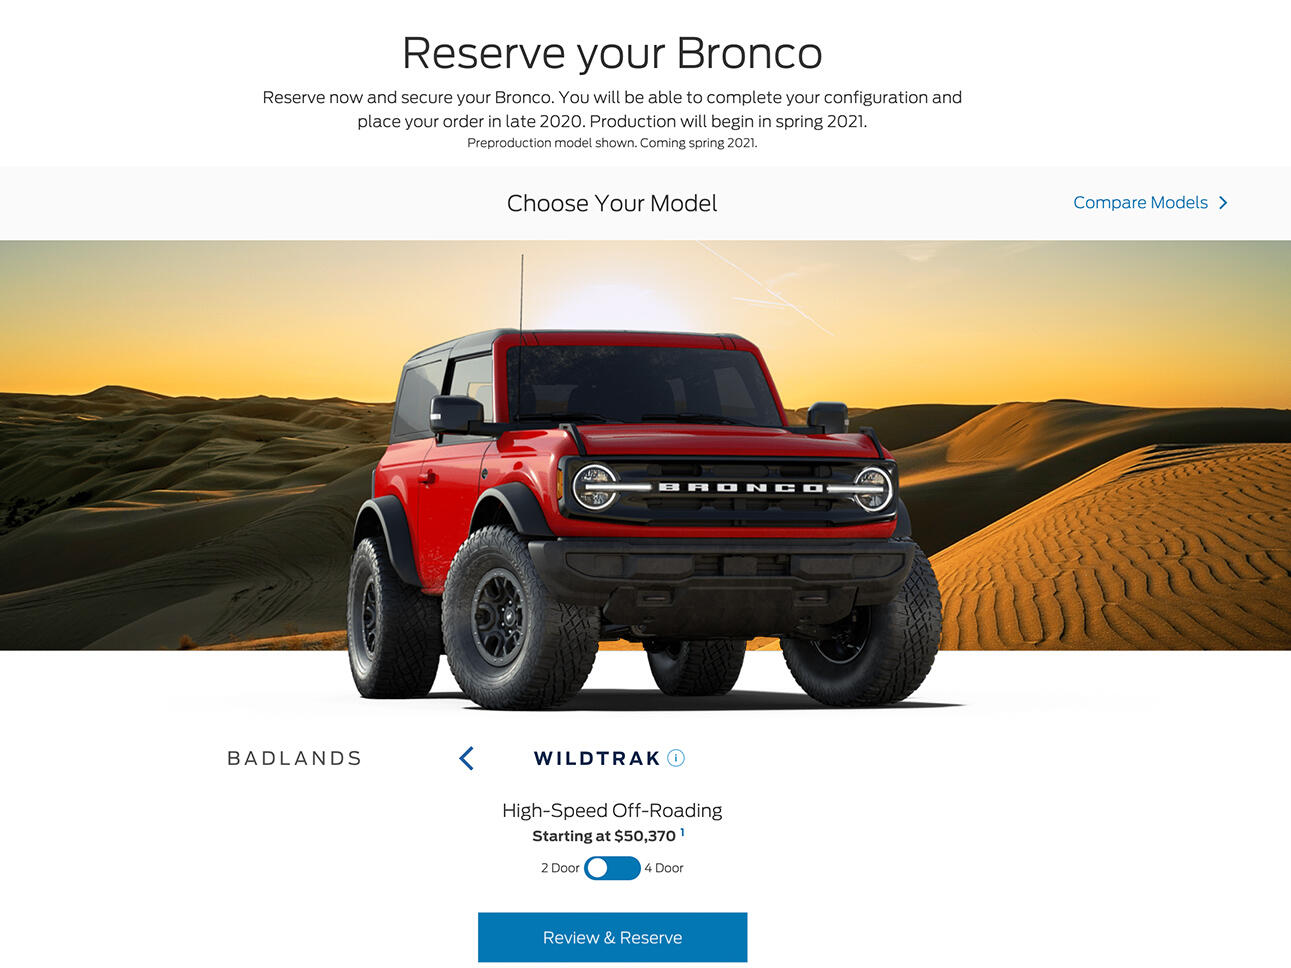 Ford Bronco Wildtrak - red - in reservation configurator